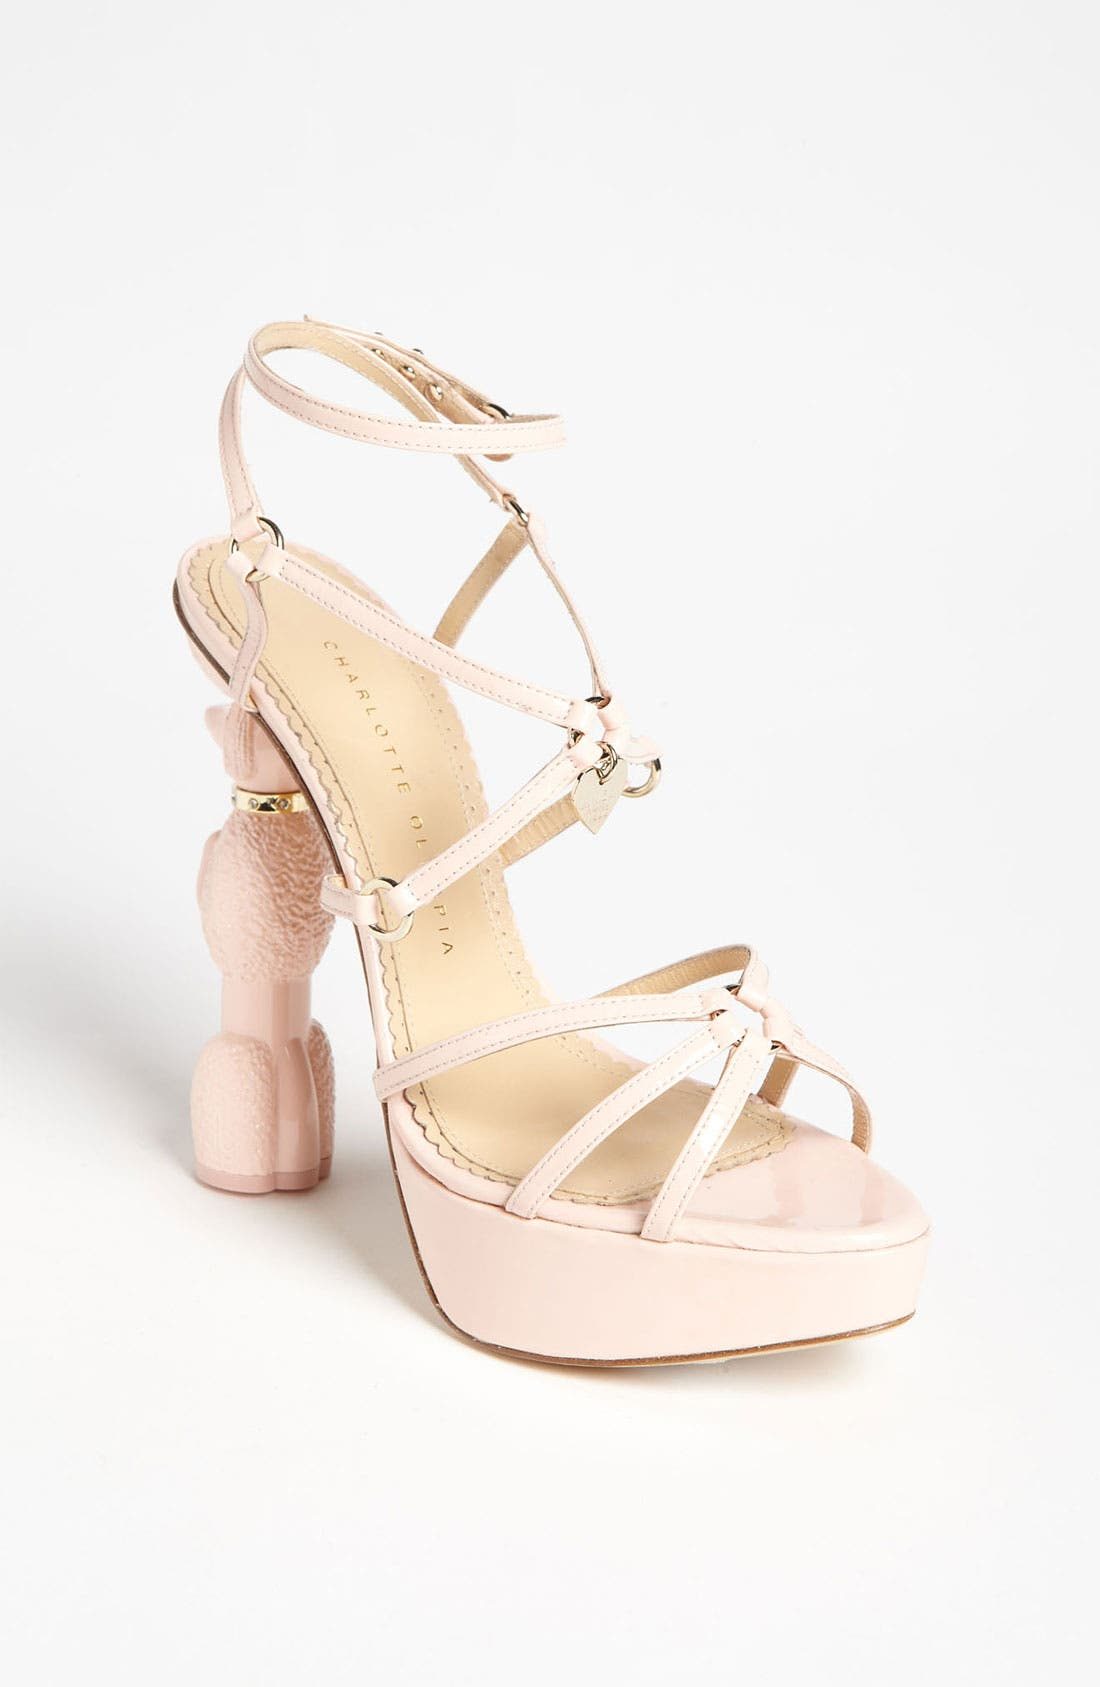 Main Image - Charlotte Olympia 'Cherie' Sandal